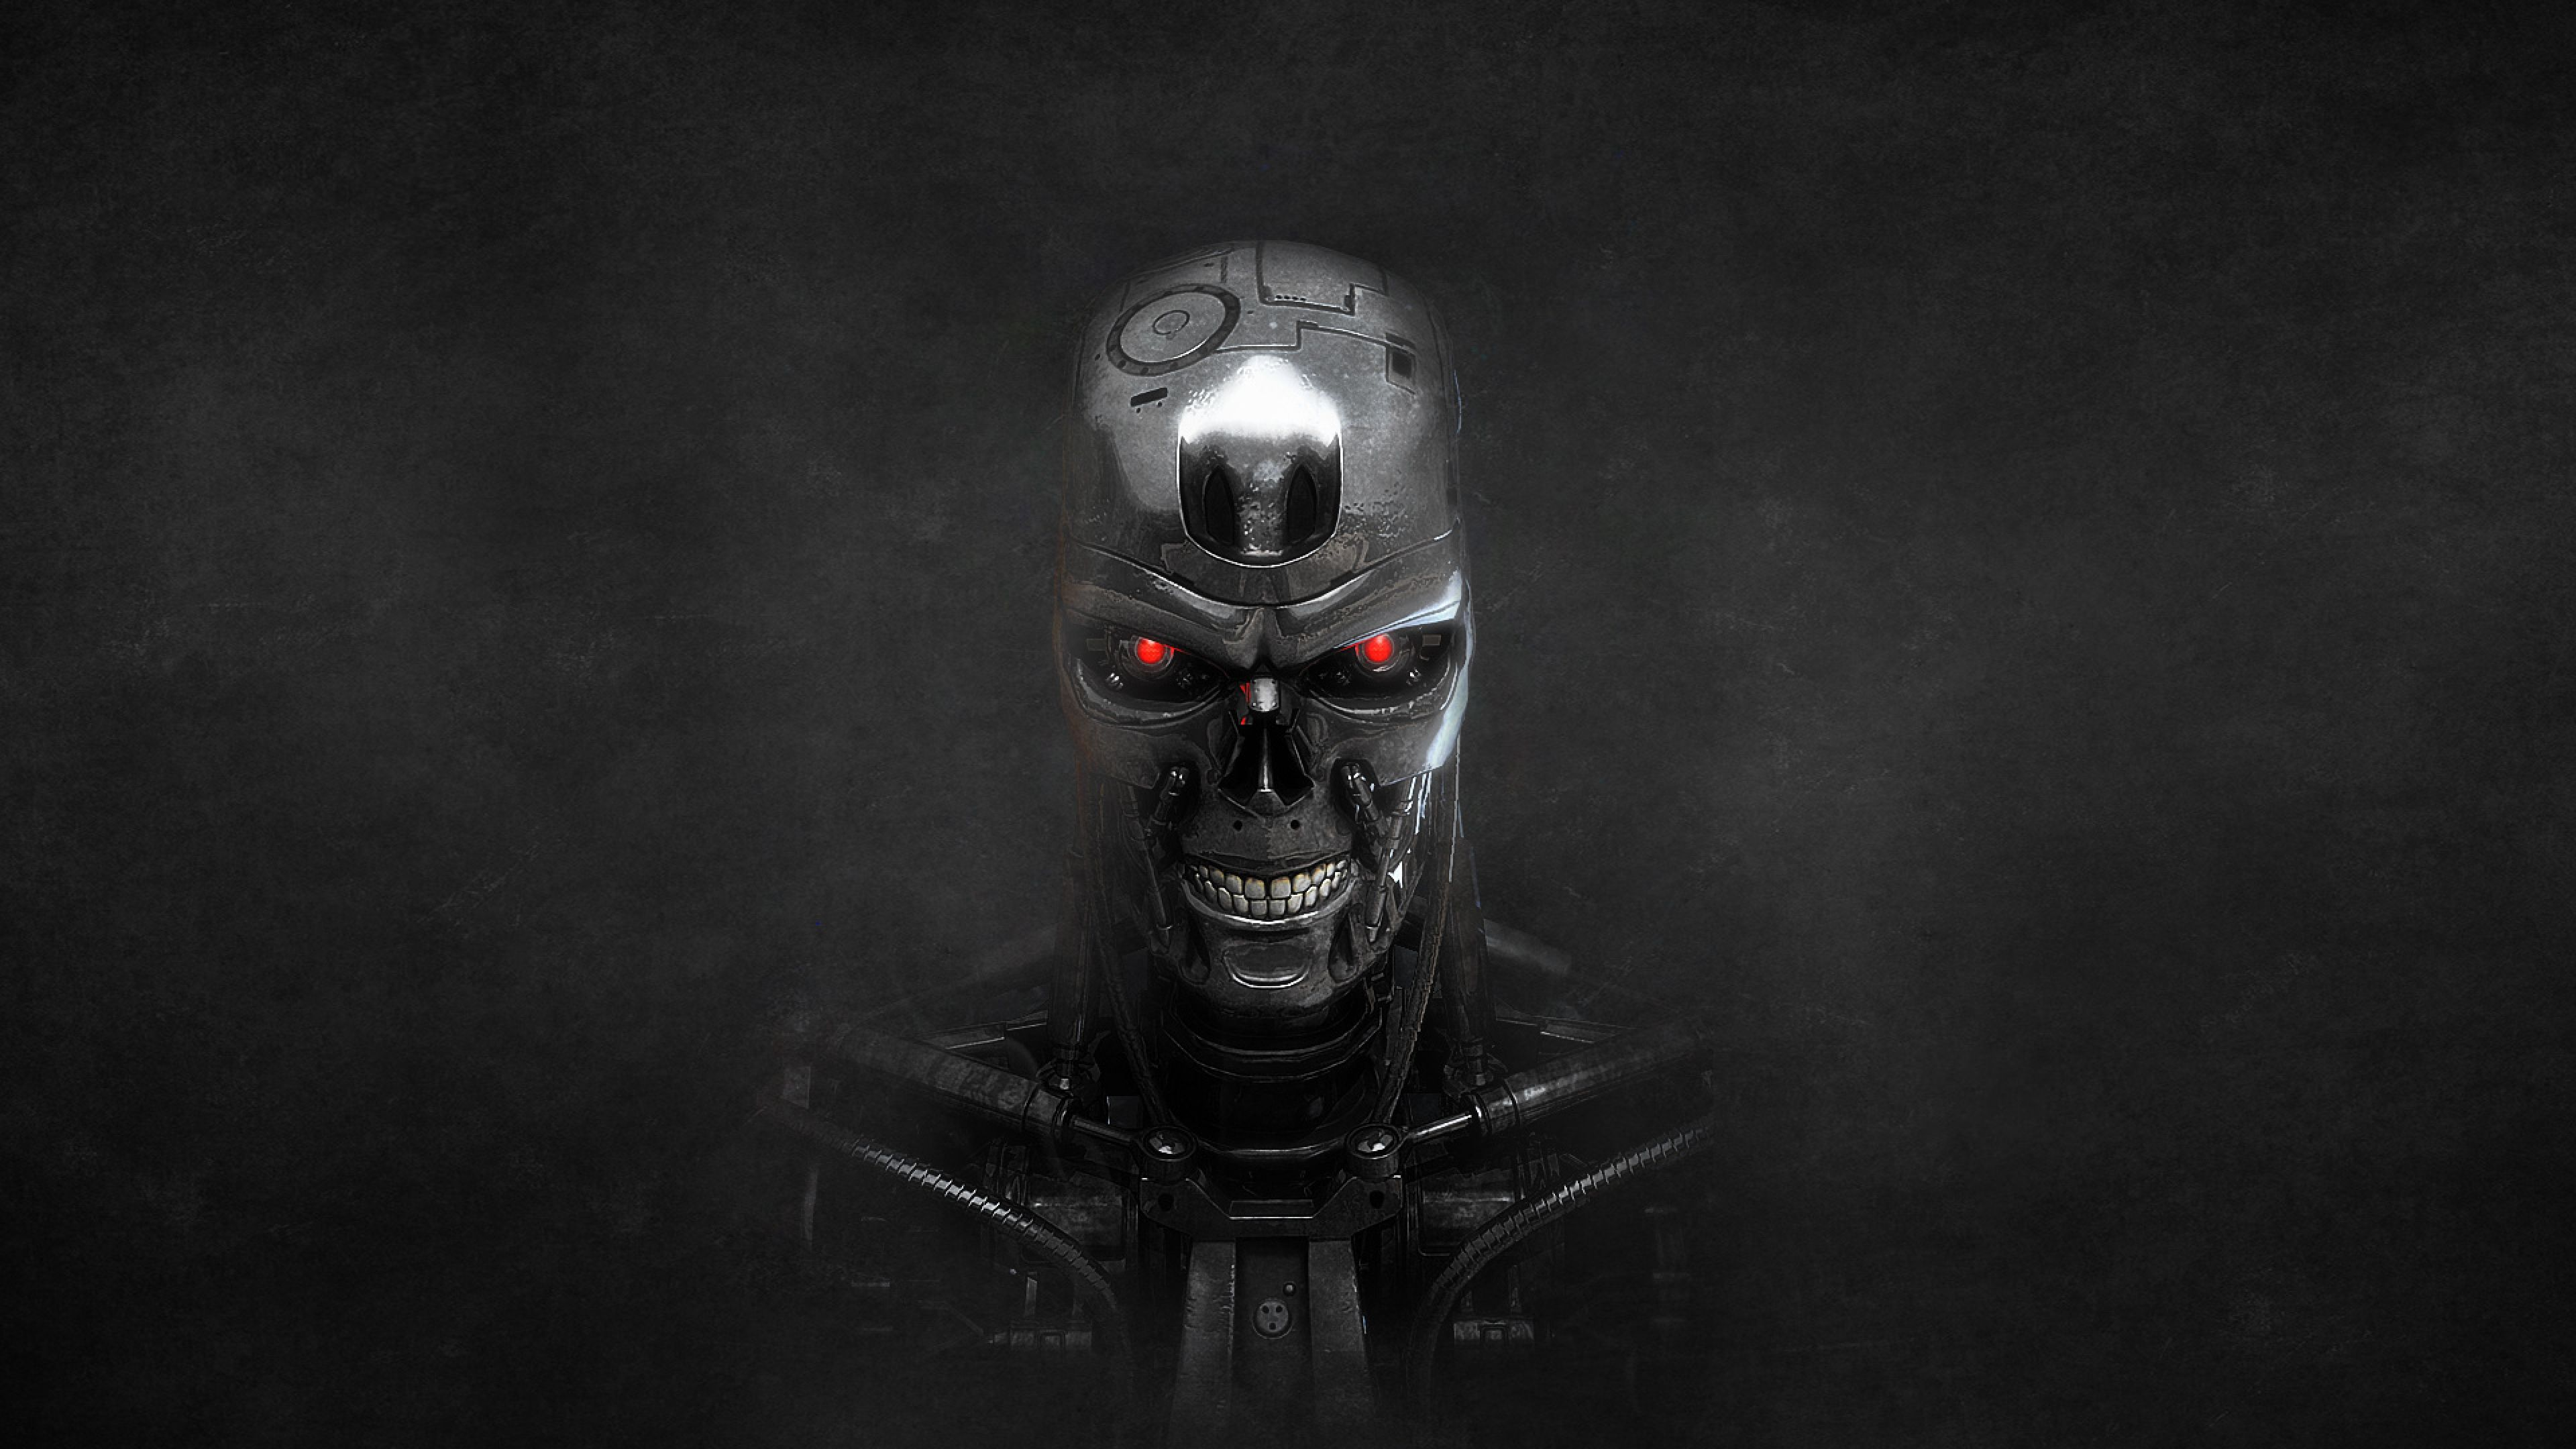 Terminator Background For Desktop Wallpaper 3840 x 2160 px 243 MB 3840x2160